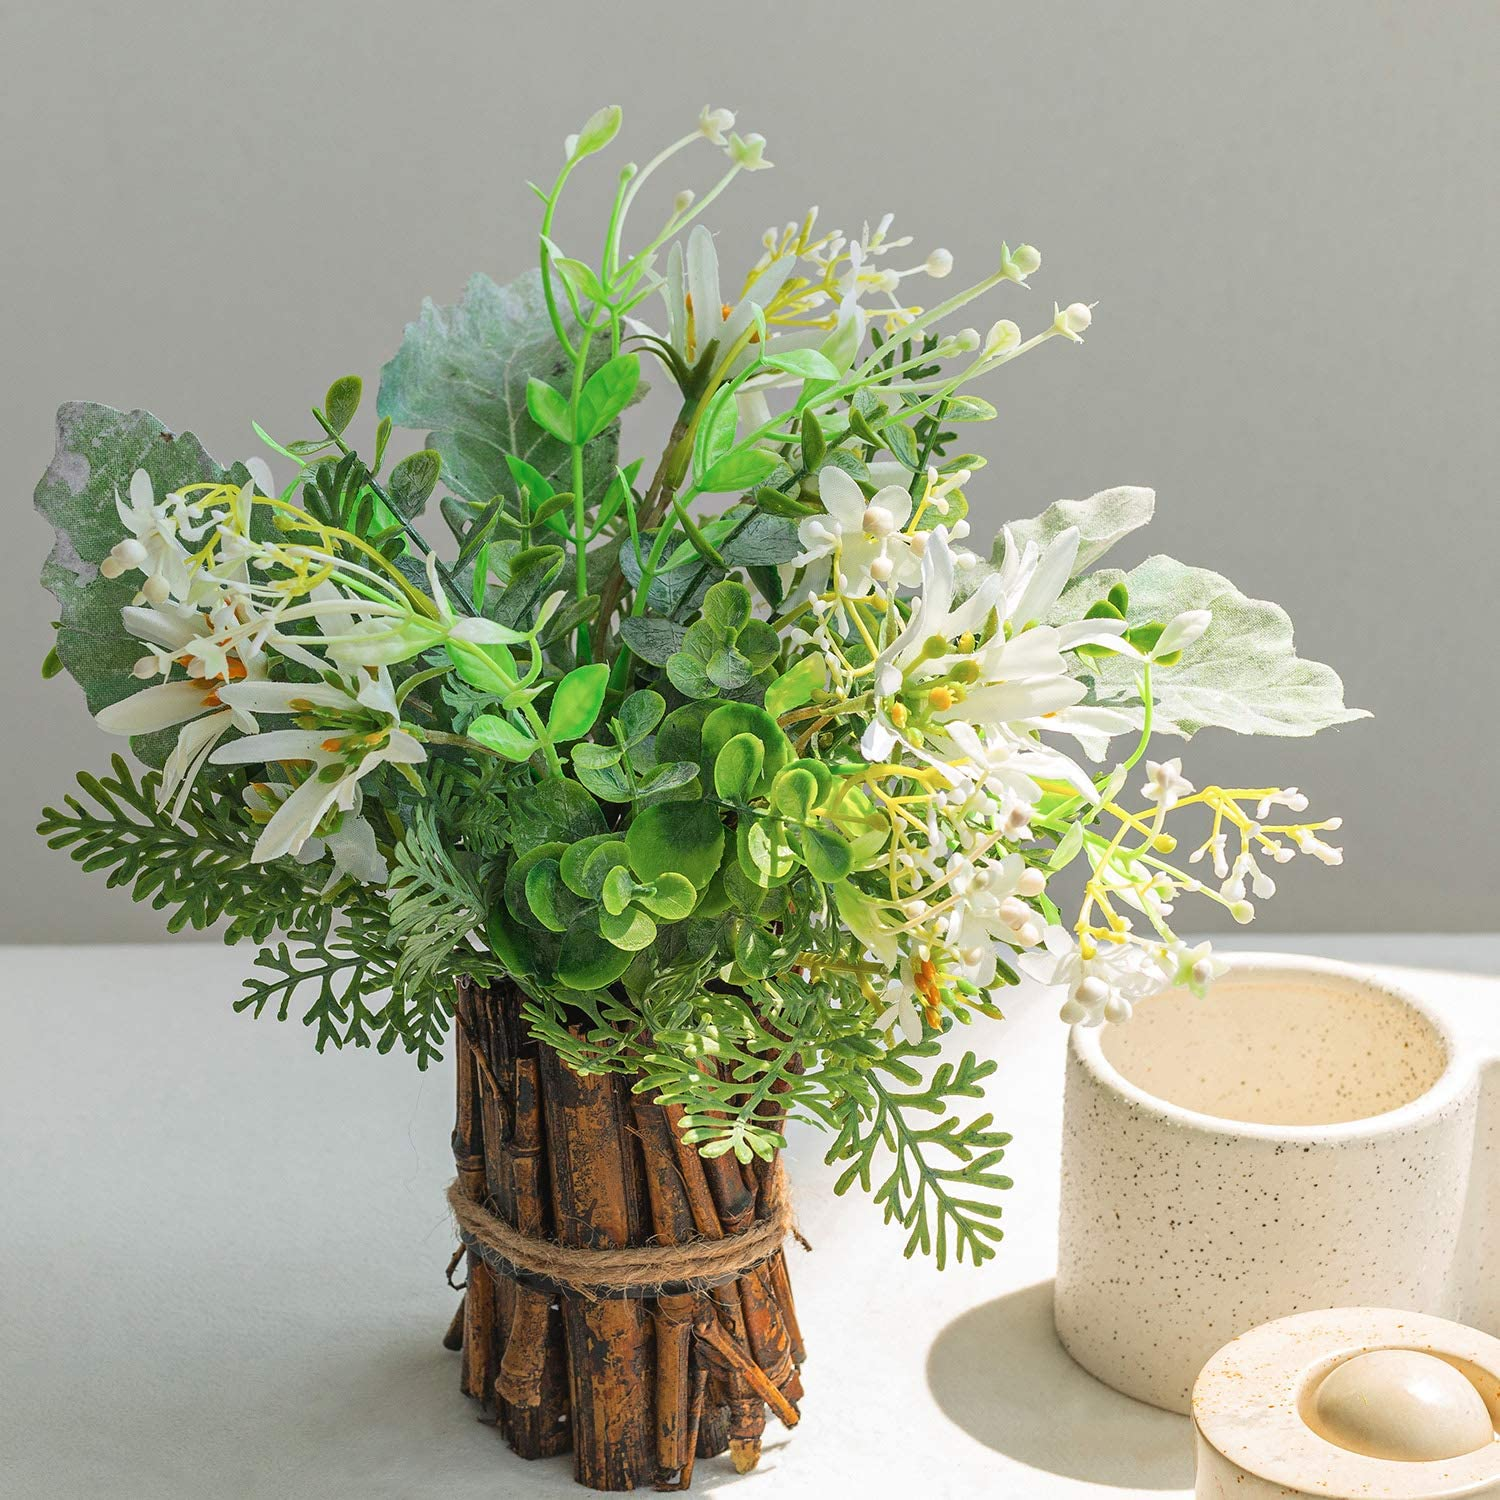 EREFAS Mini Potted Artificial Flowers 10.2